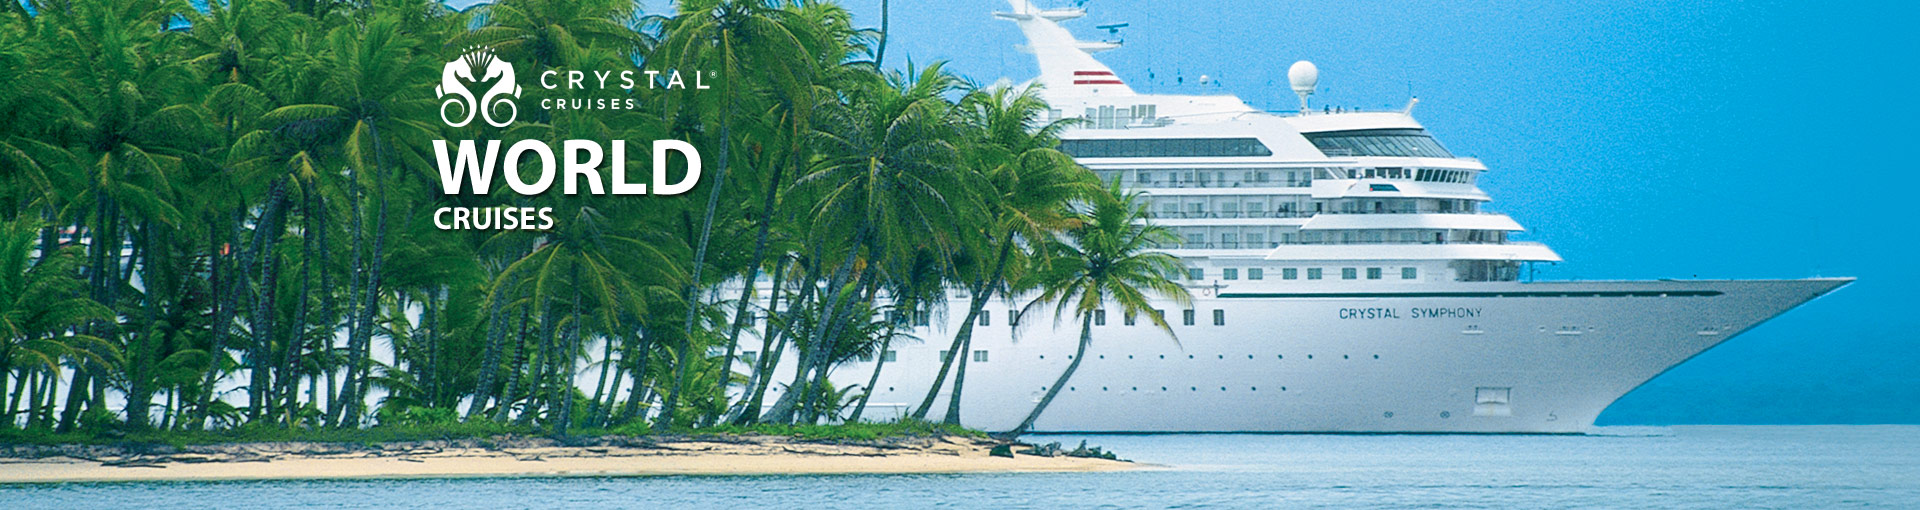 Crystal Cruises World Cruises